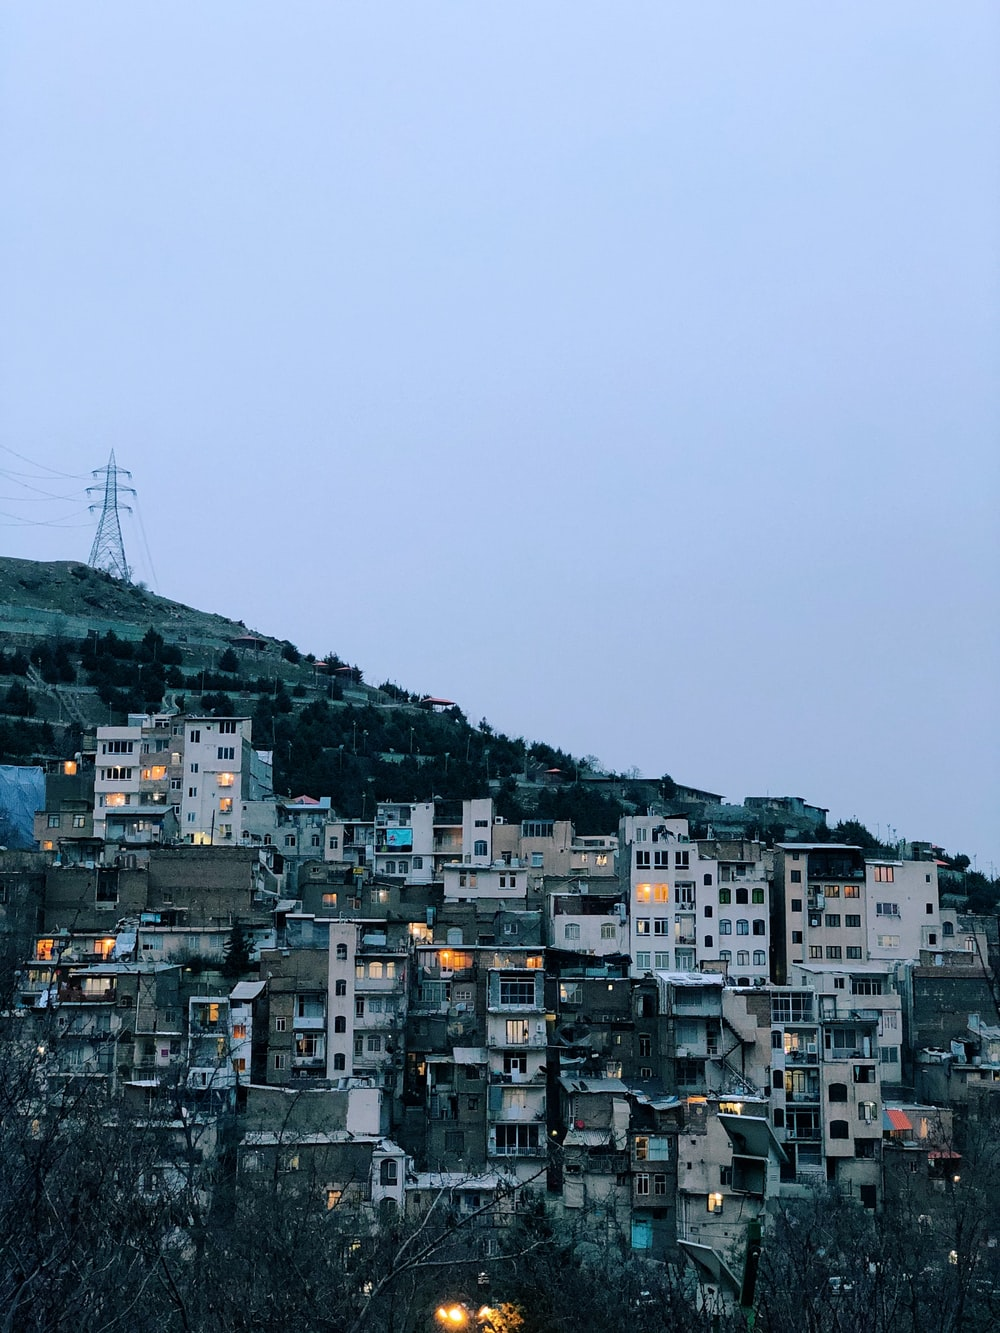 city with high rise buildings under gray sky during daytime